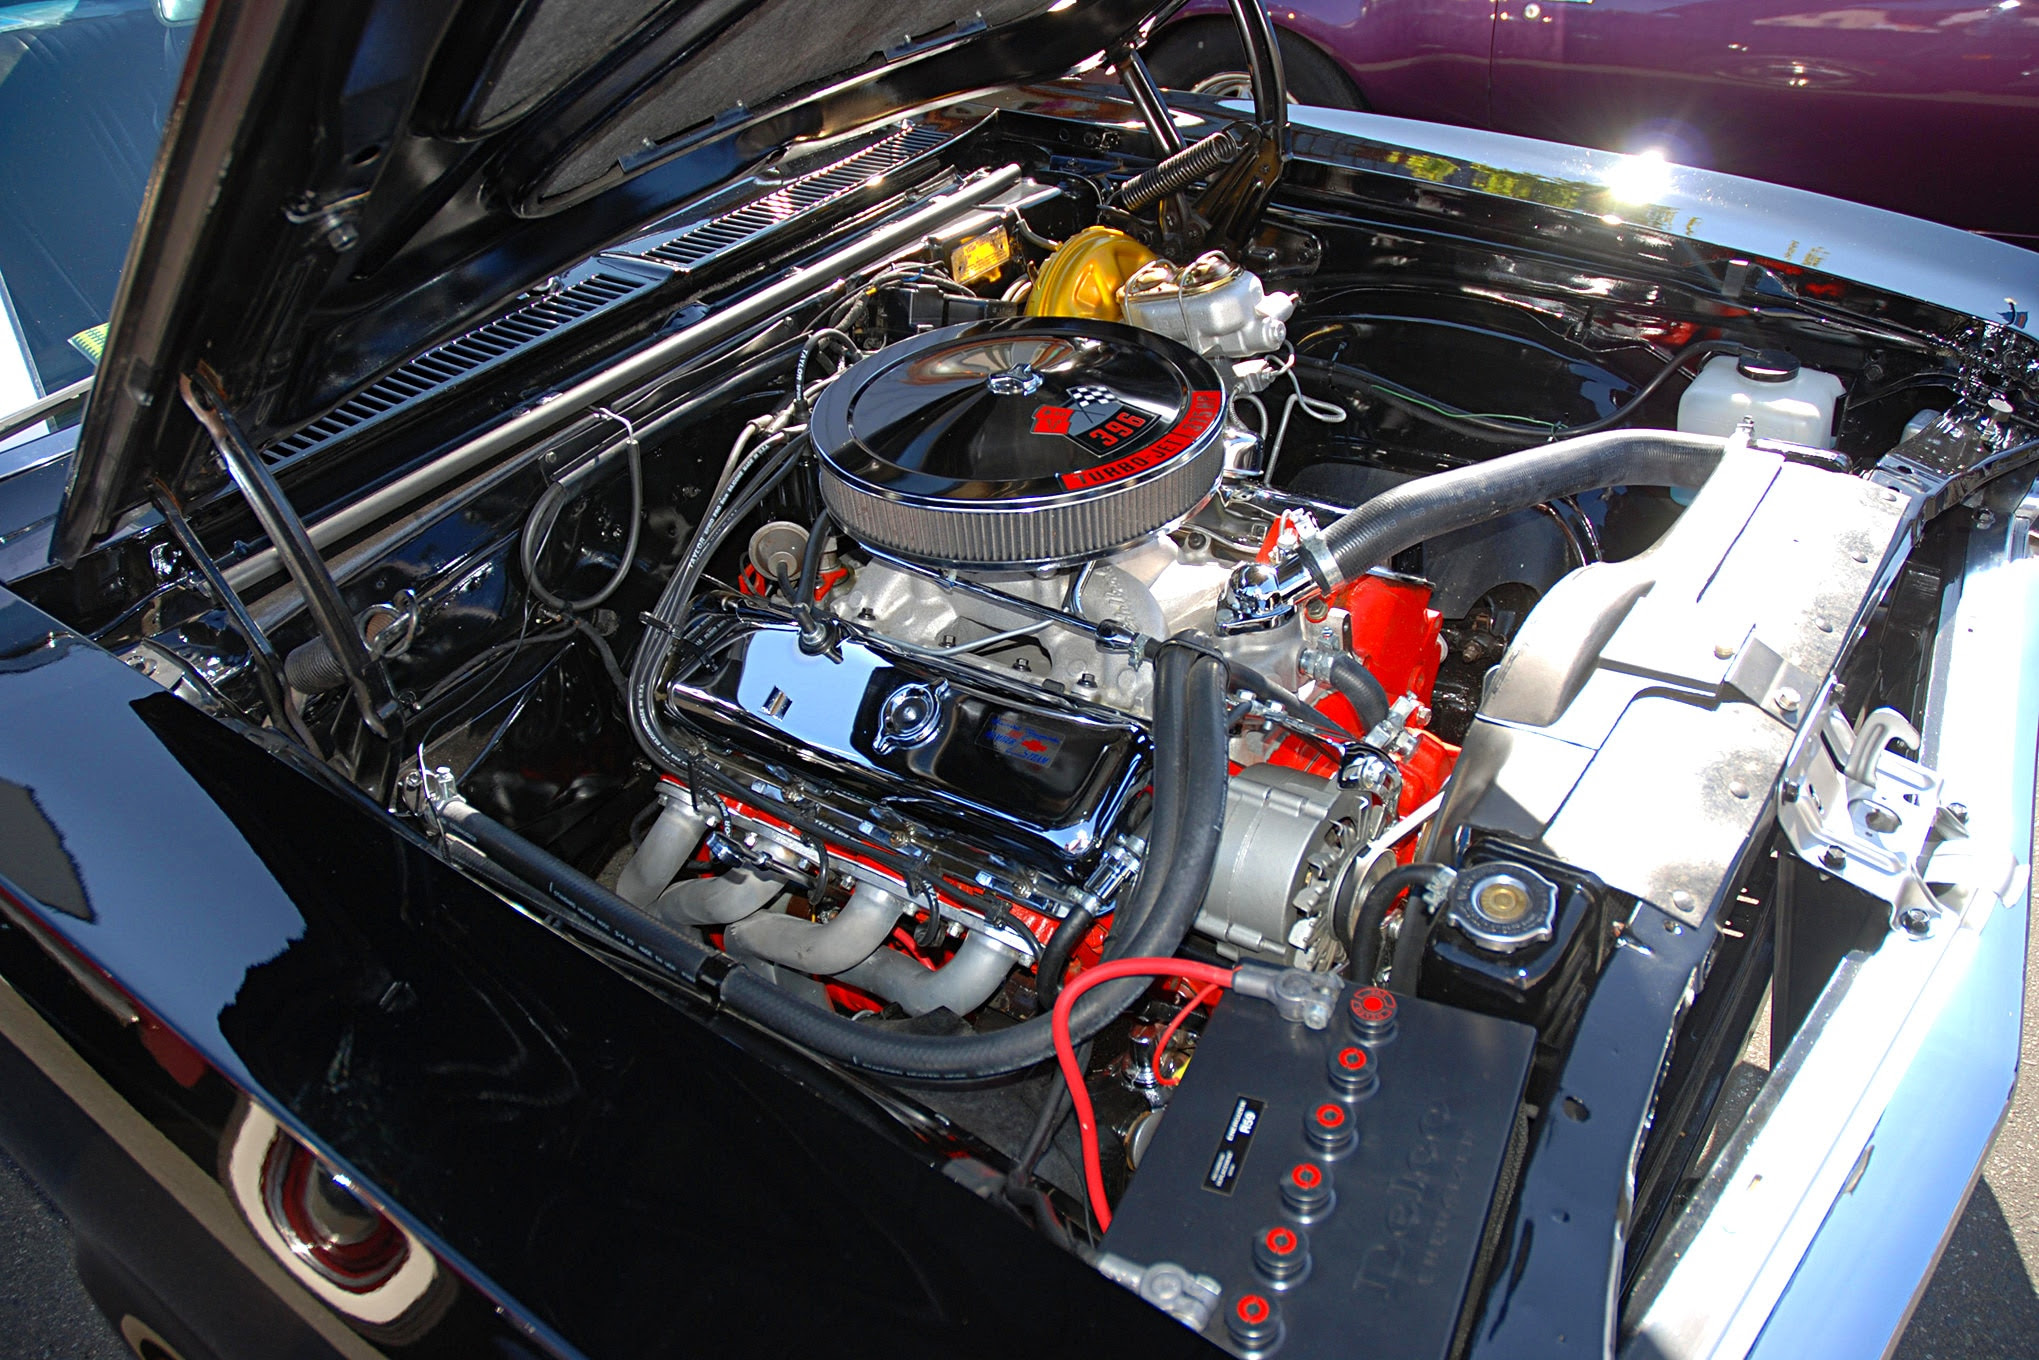 For A 1970 Chevy Camaro Wiring Harness | laness.us